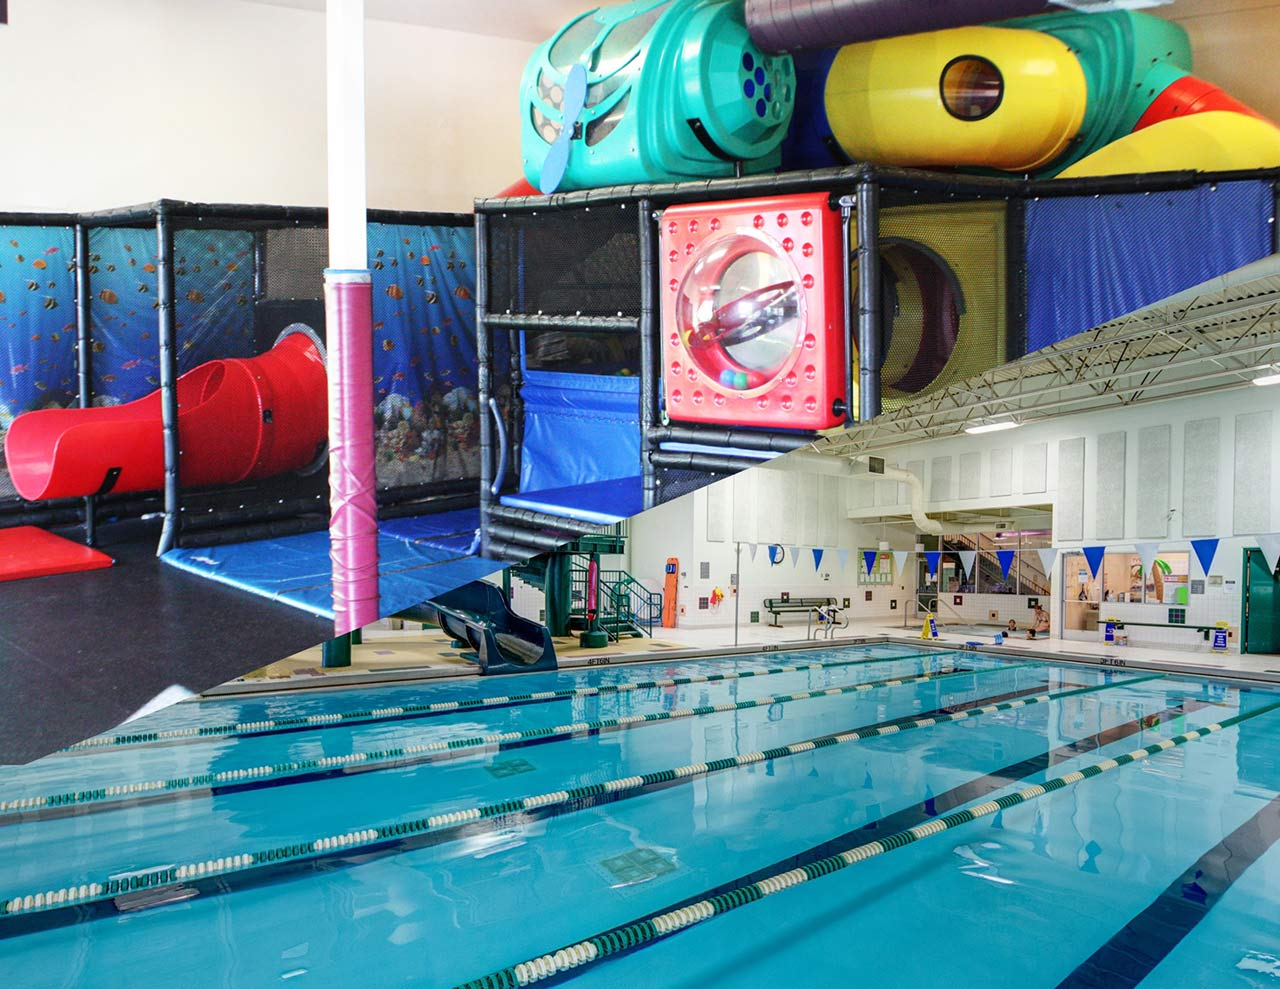 South Pool Playcenter